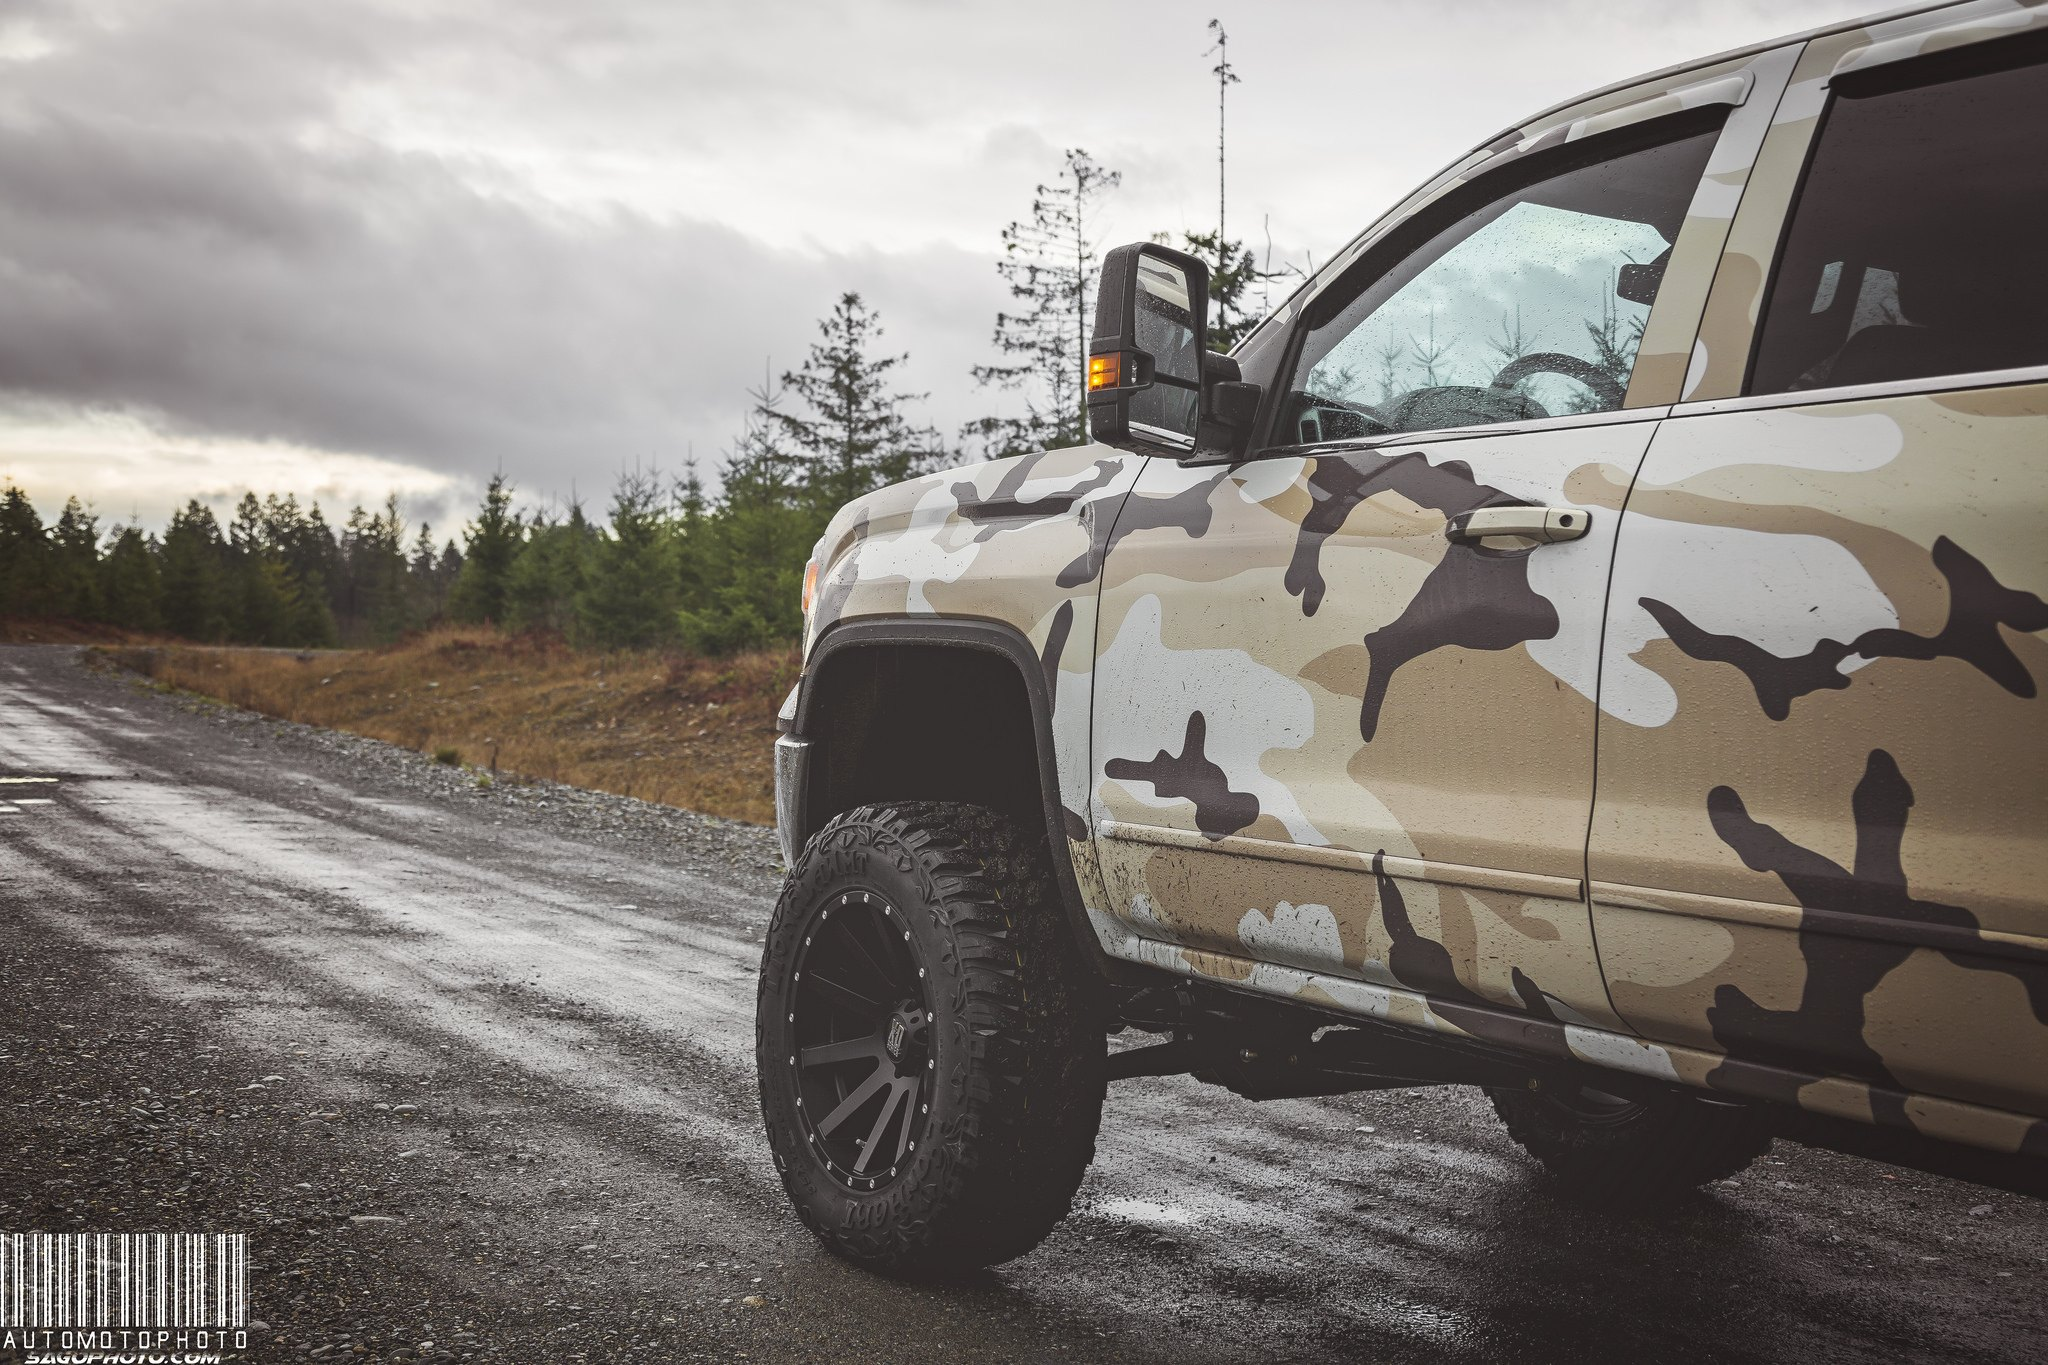 XD Off-road Rims on GMC Sierra 1500 - Photo by Sage Goulet (SAGO PHOTO)